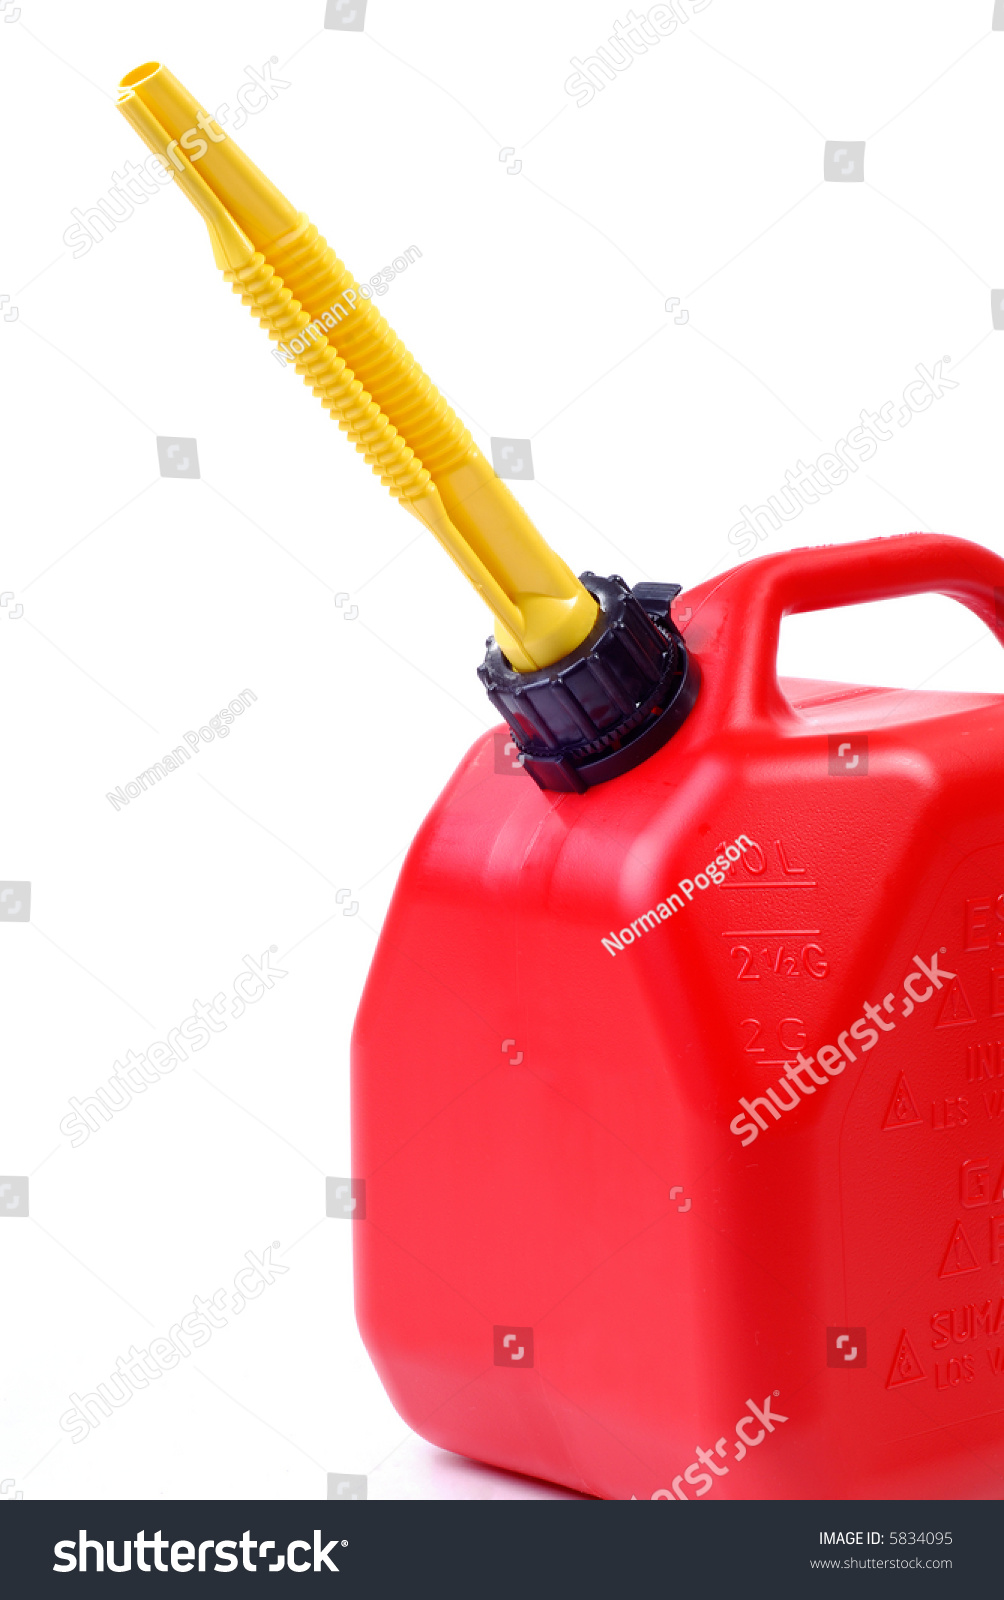 how to use emergency gas